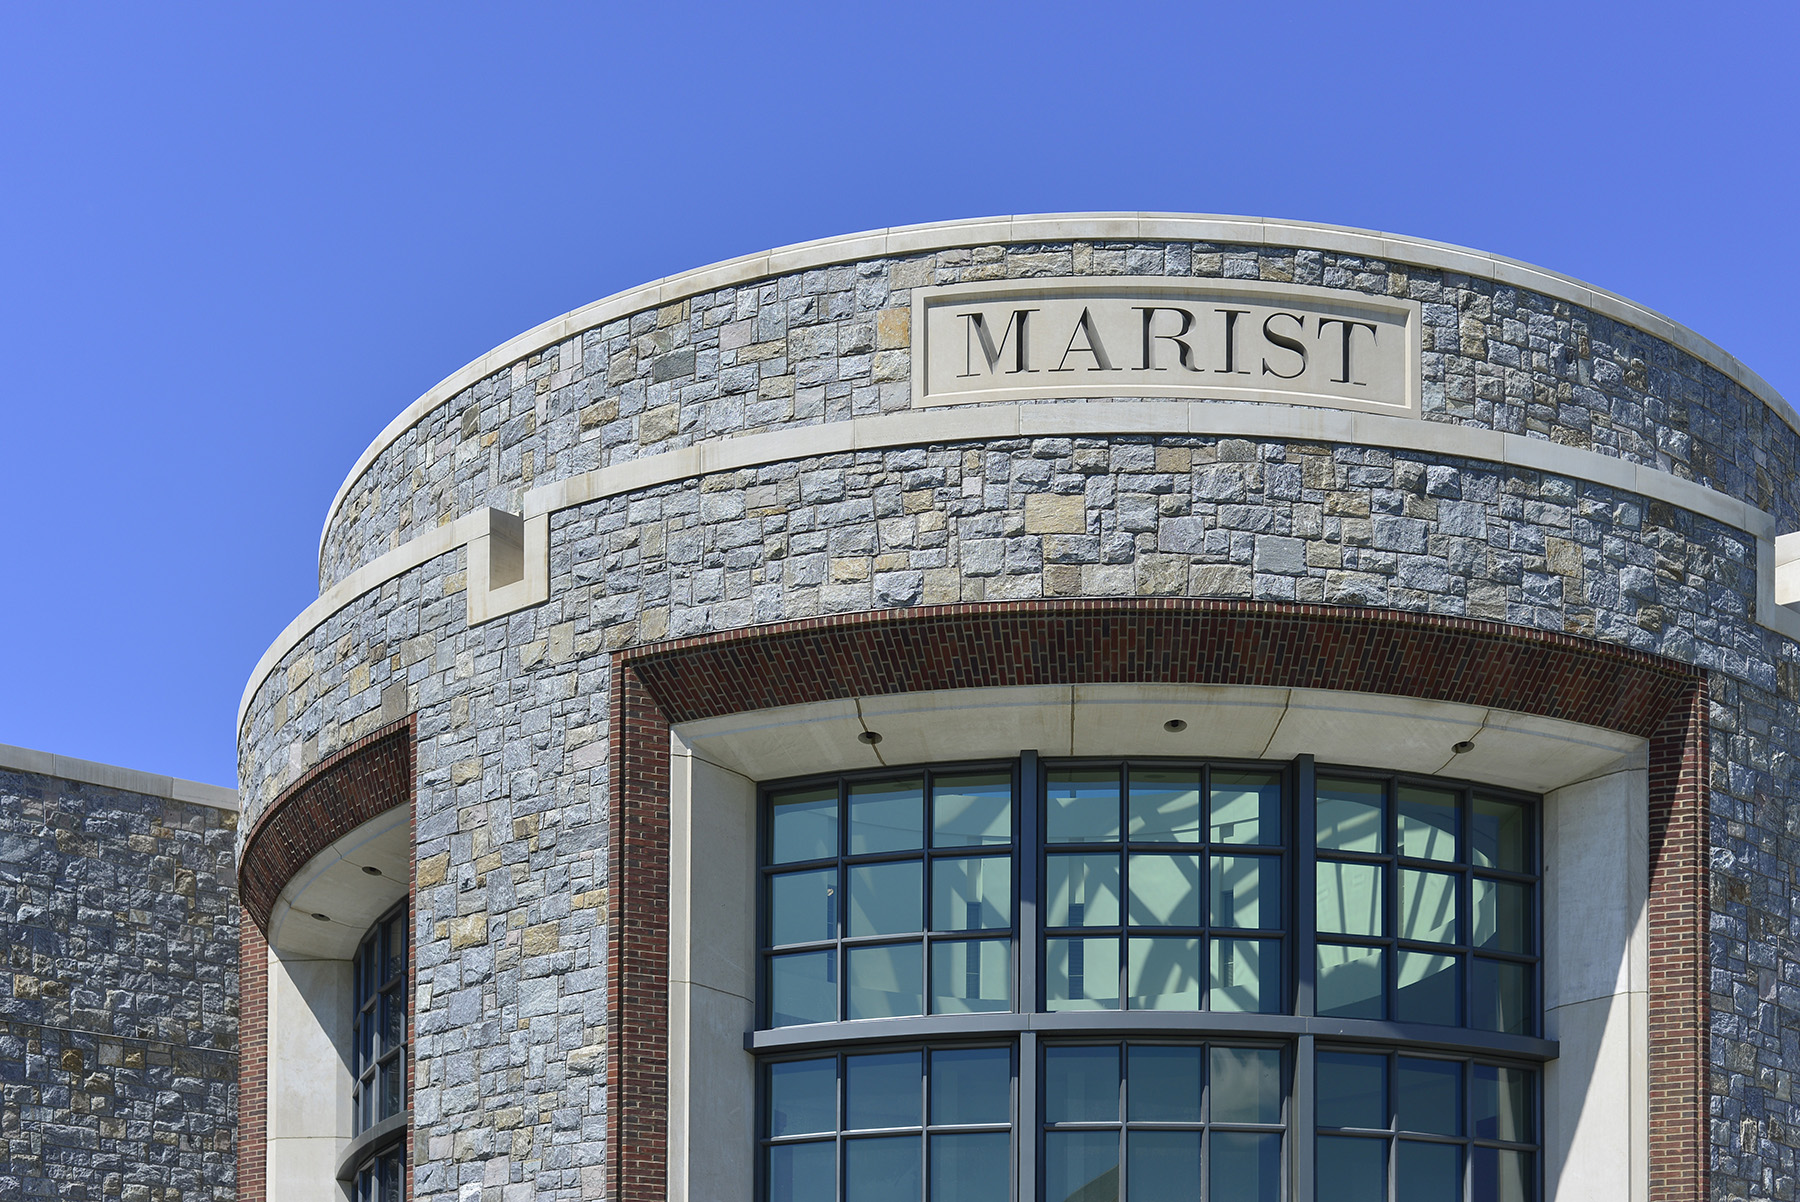 marist engraved in stone